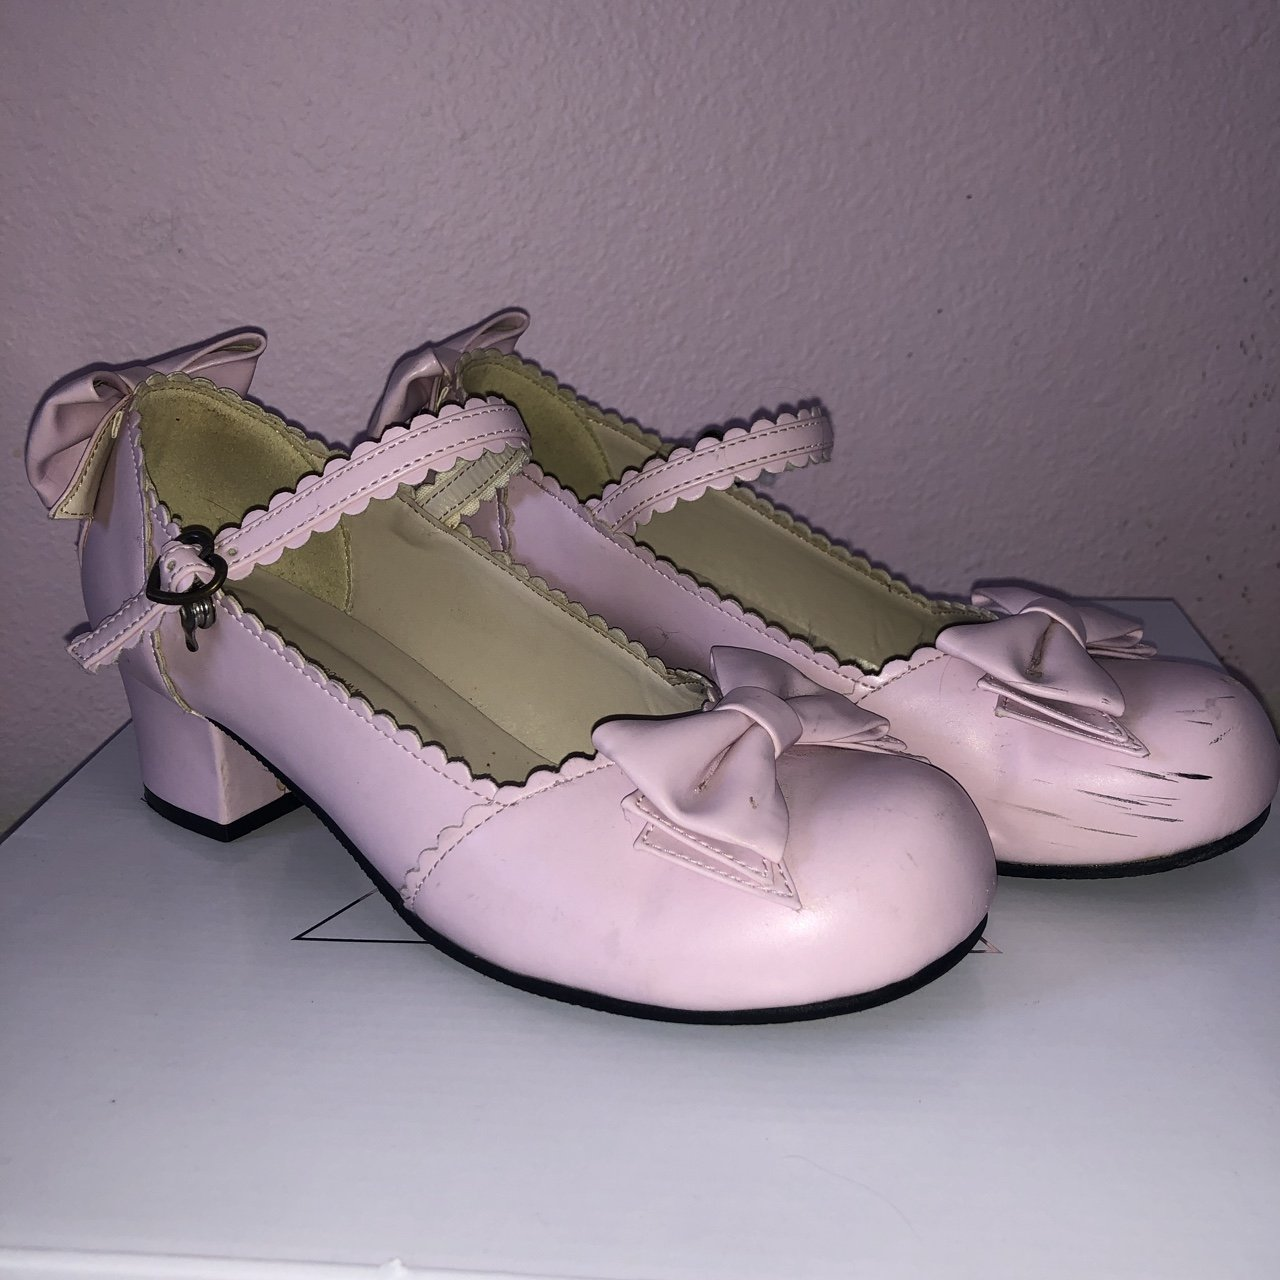 ba4334273189 Dolly Lolita jelly shoes size.  15. Light Blue Chunky Heel Platform.  25.  Body line tea party shoes